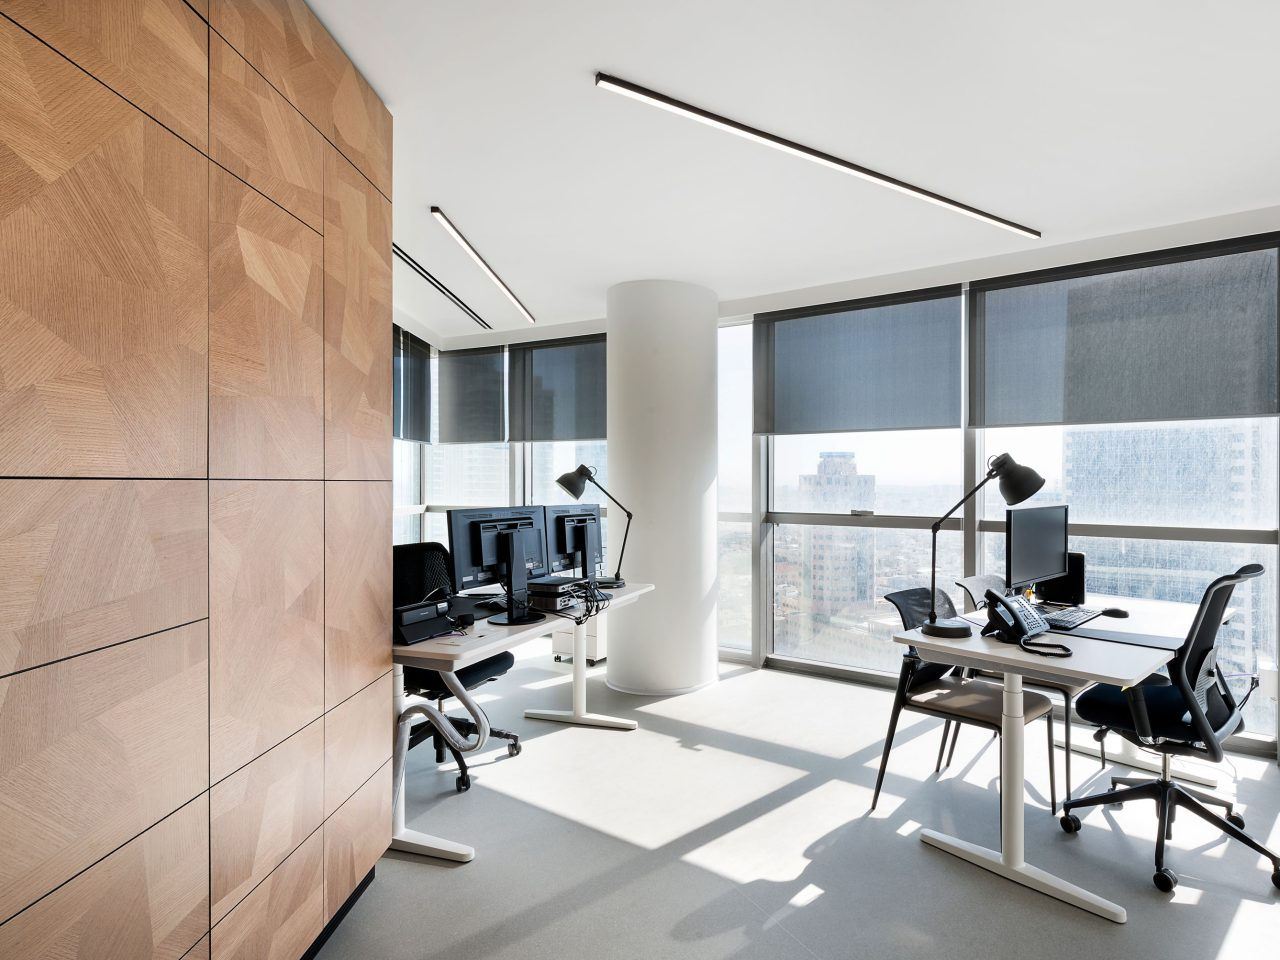 Pictet Offices with seamless BASWA Phon acoustic plaster